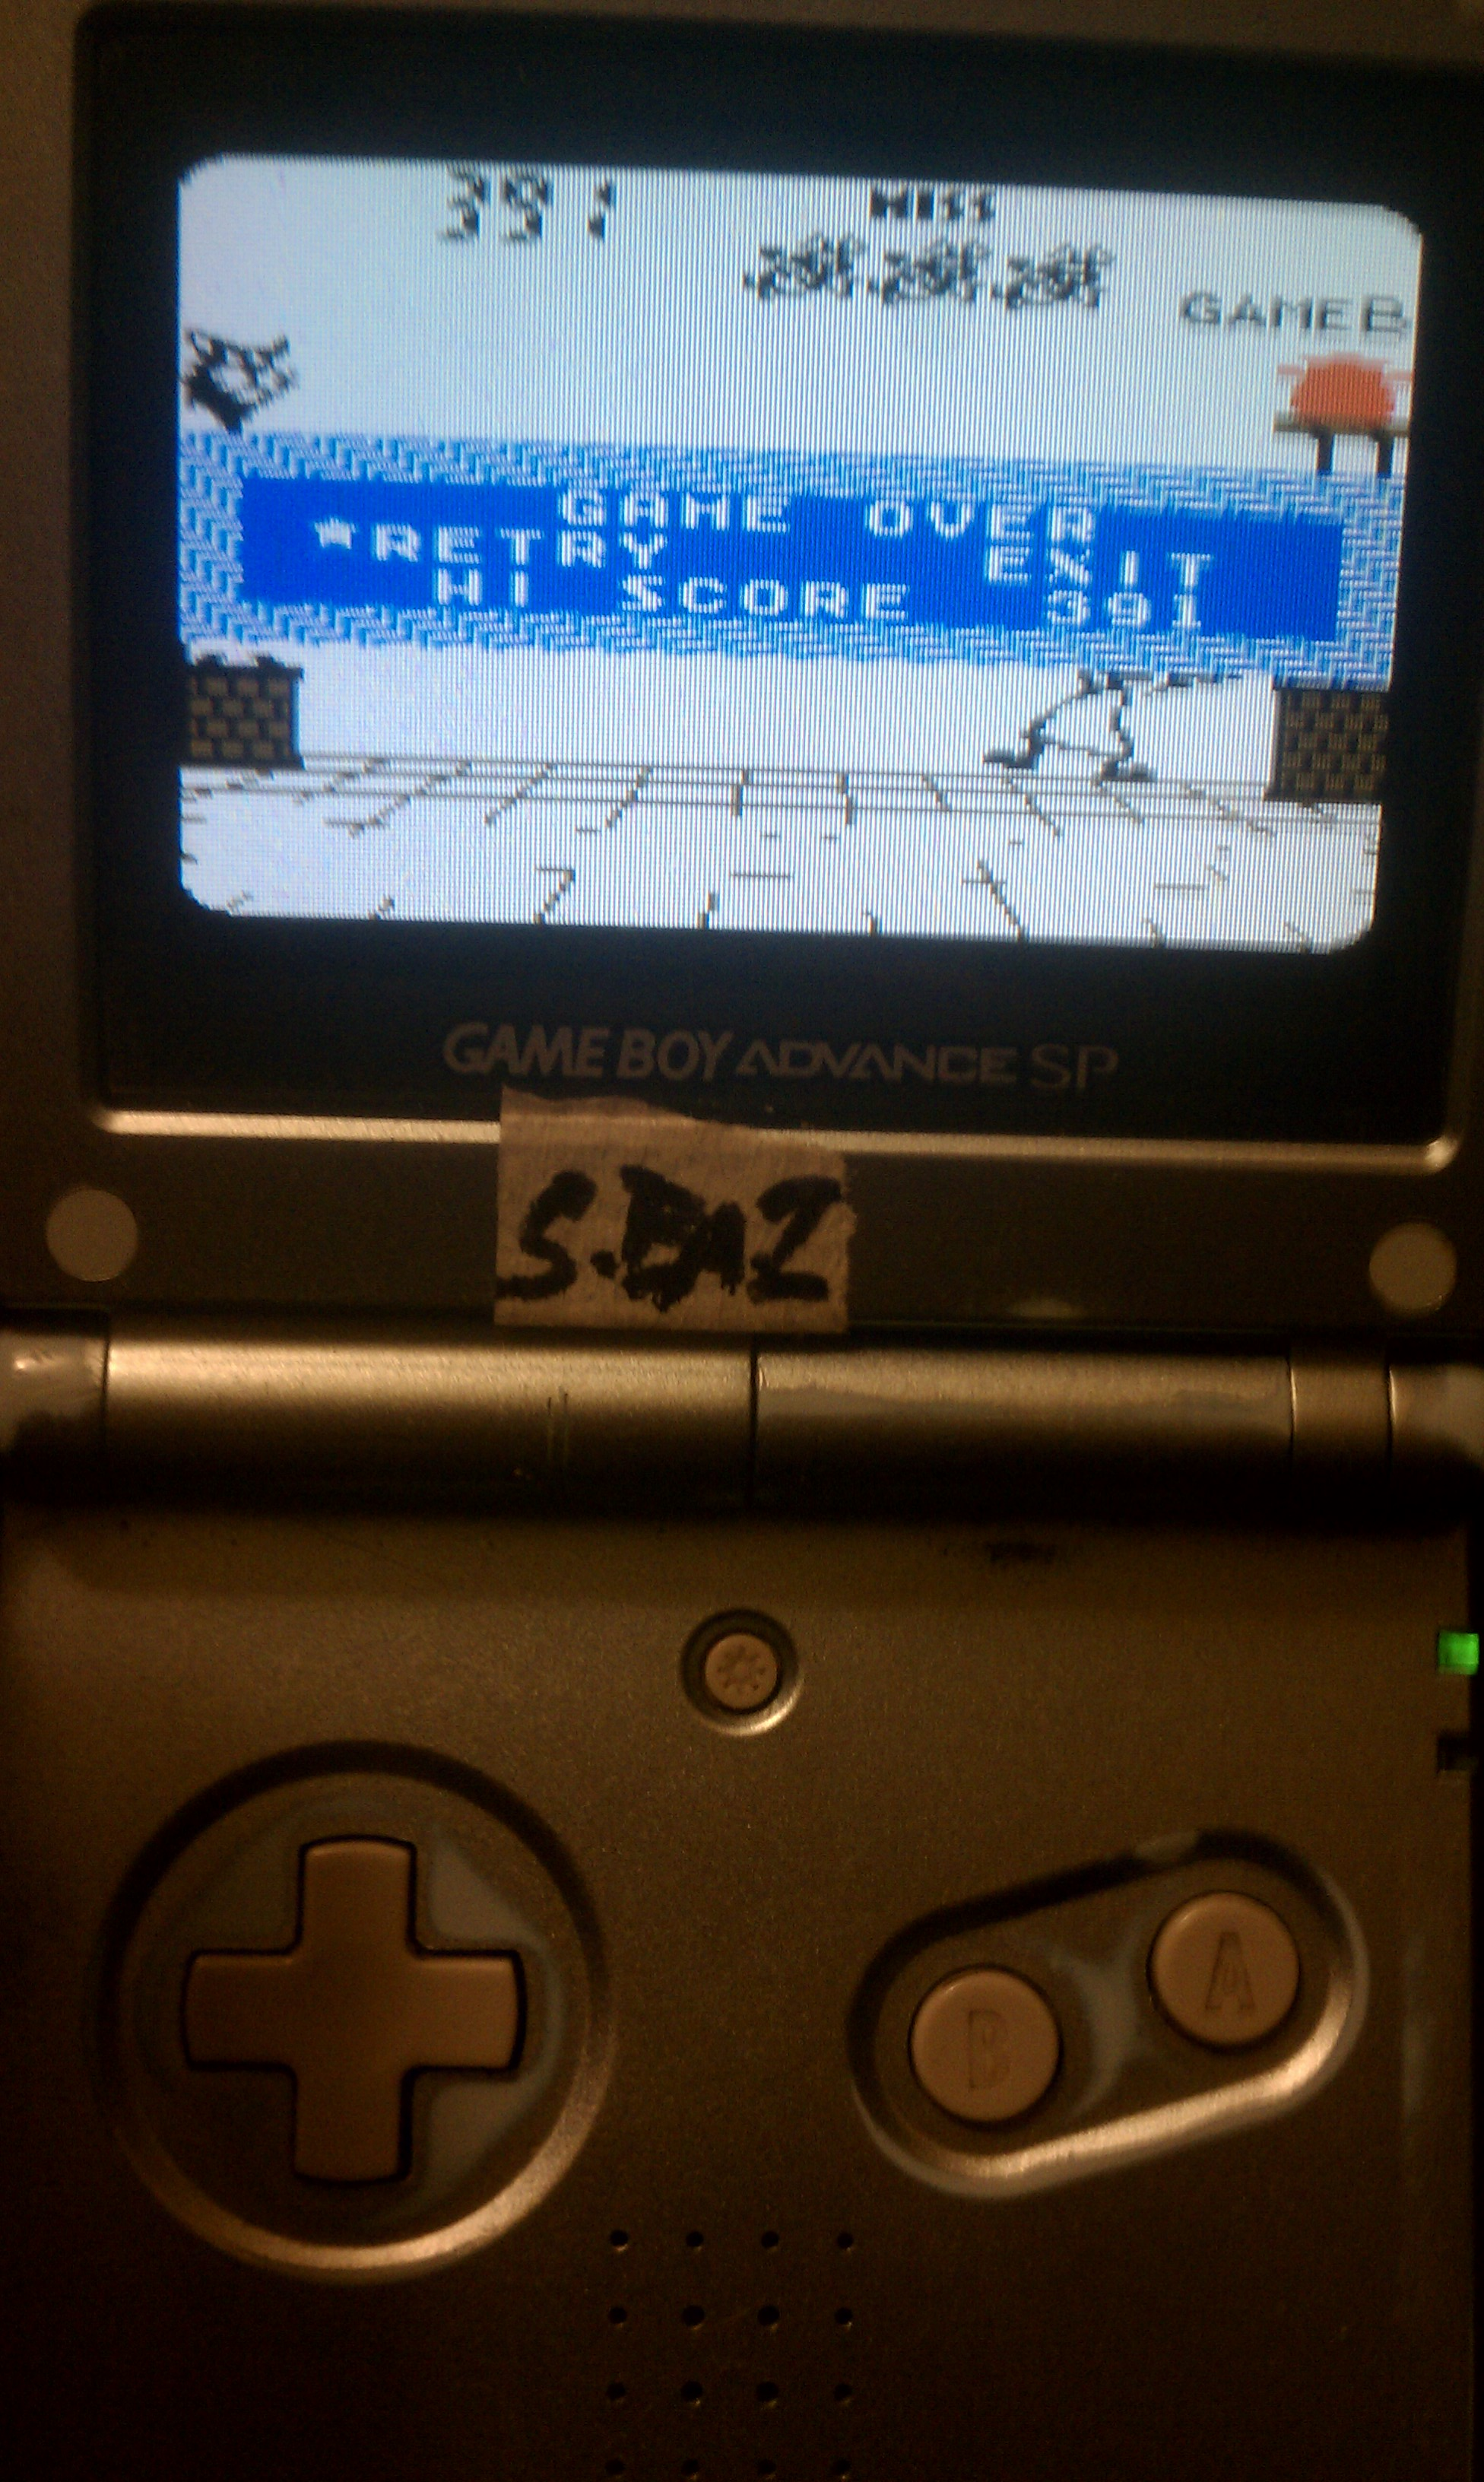 S.BAZ: Game & Watch Gallery 2: Chef: Classic: Hard (Game Boy Color) 391 points on 2020-08-30 19:05:56